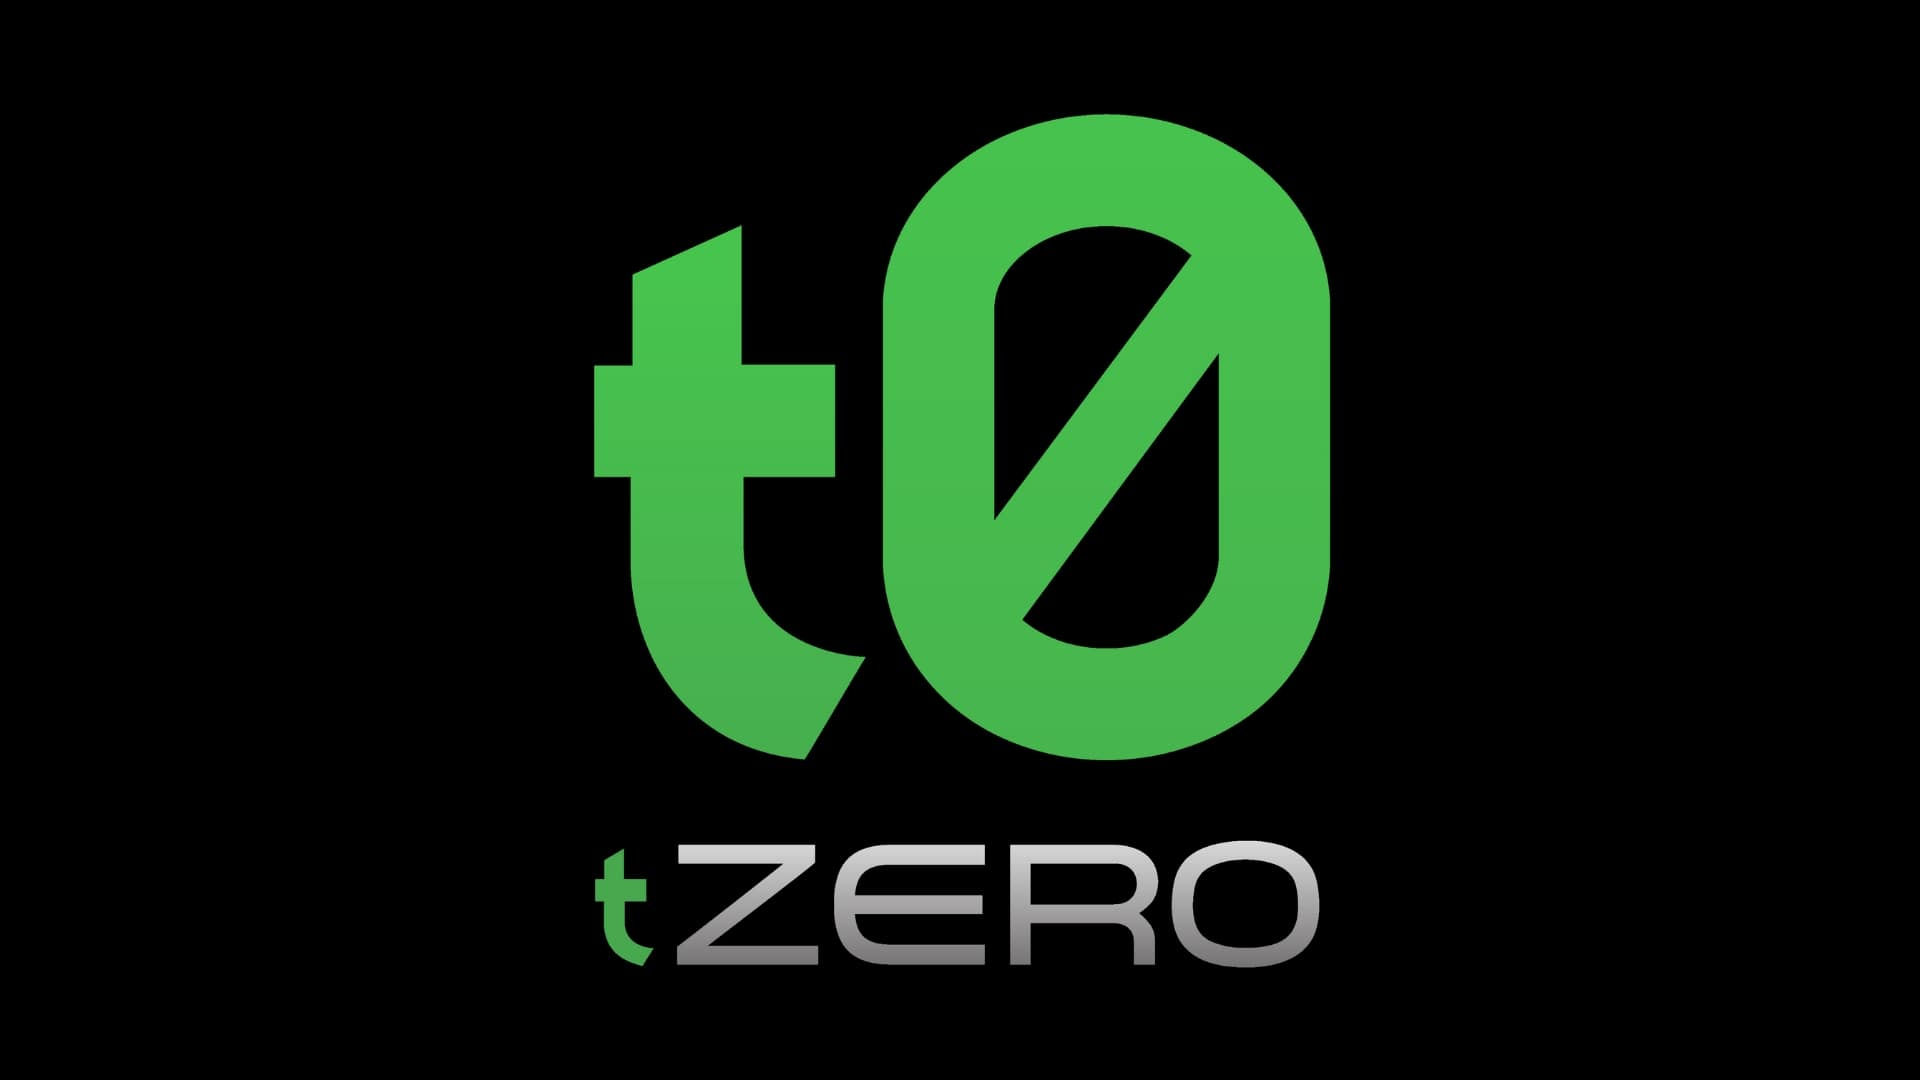 tZero Announces the Launch of its New Regulated STO Platform